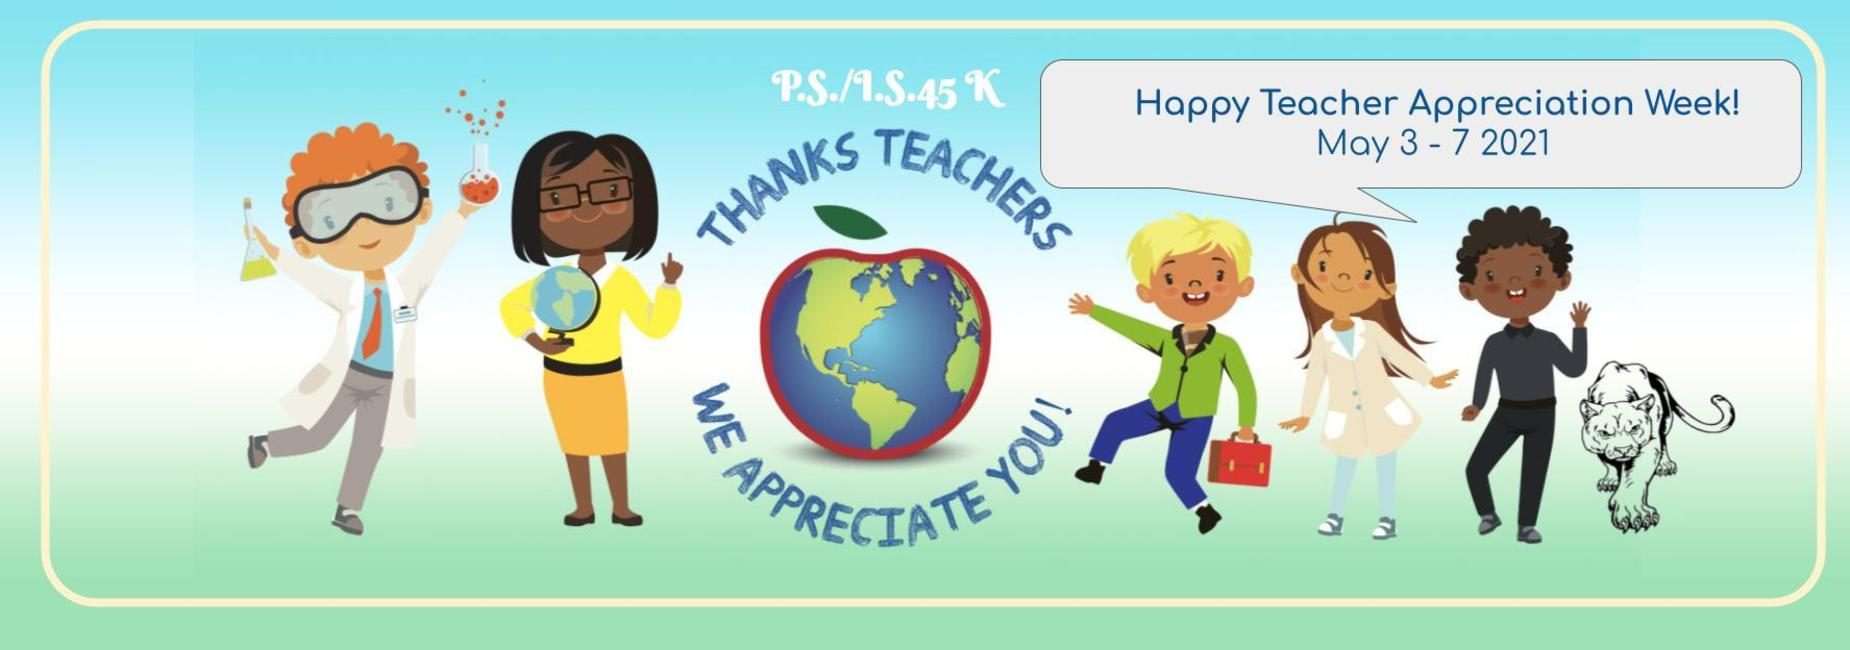 Happy Teacher Appreciation Week May 3-7th 2021